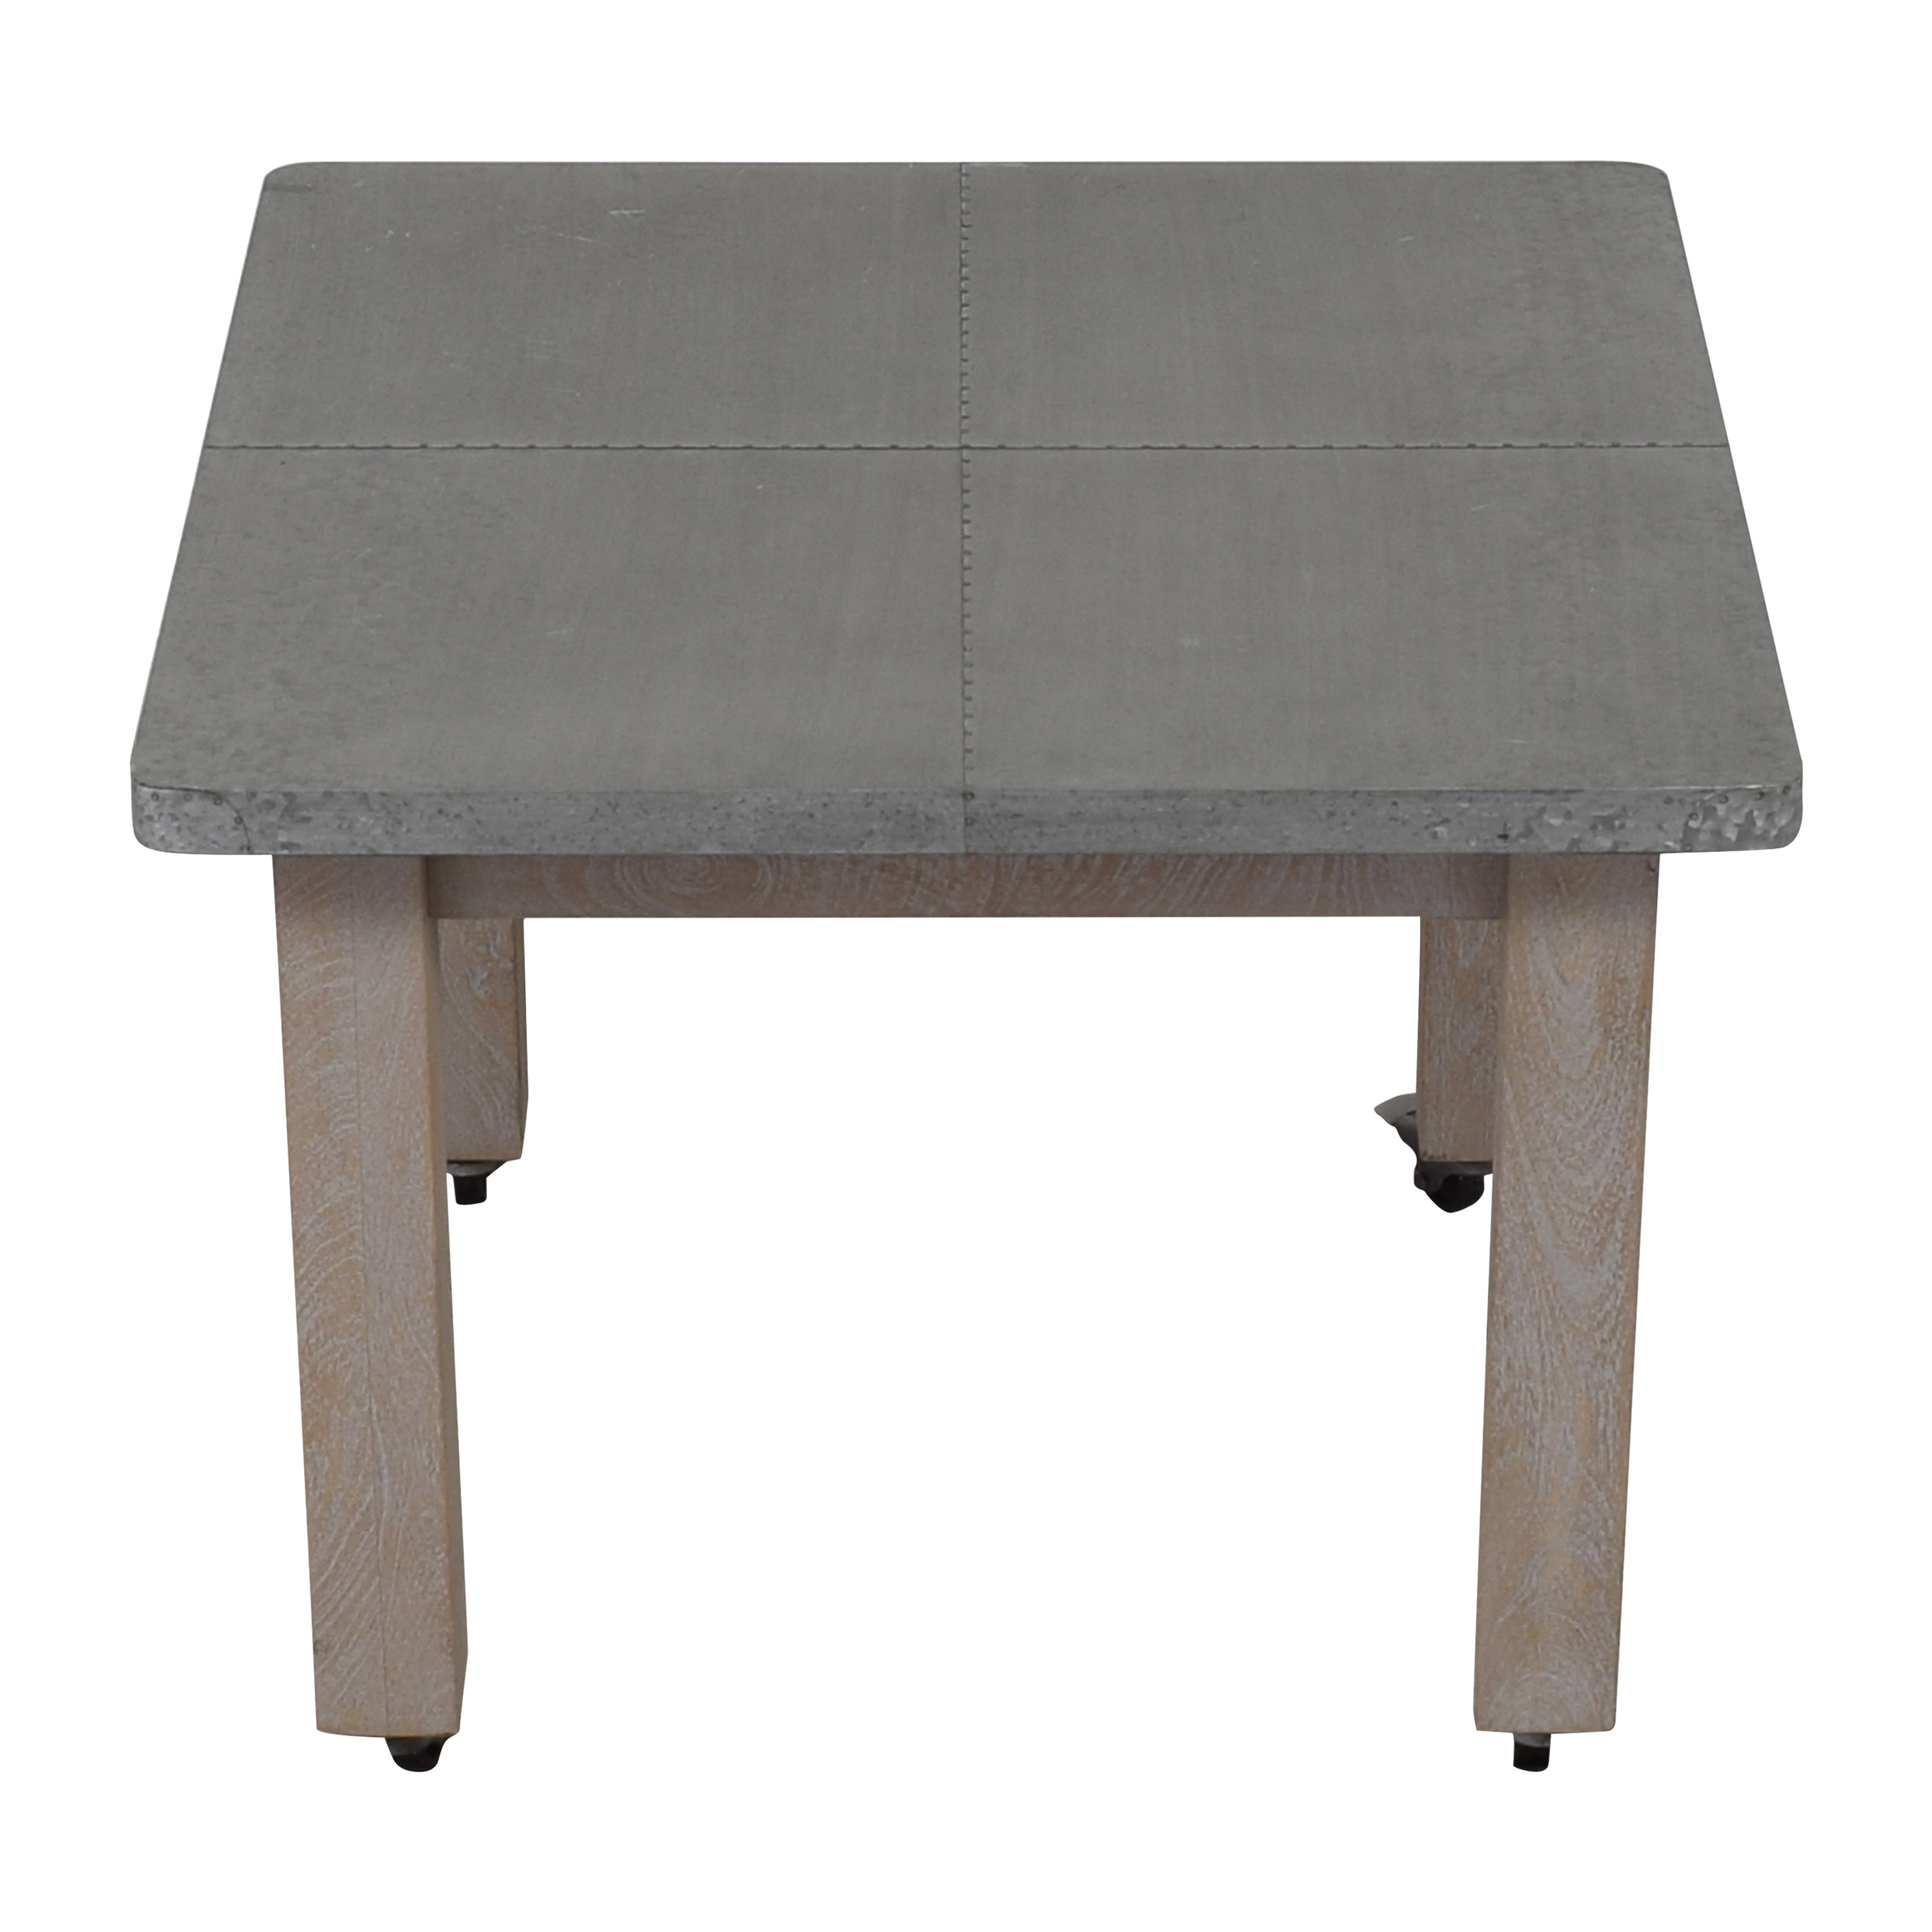 RH Baby & Child Vintage Schoolhouse Square Play Table RH Baby & Child